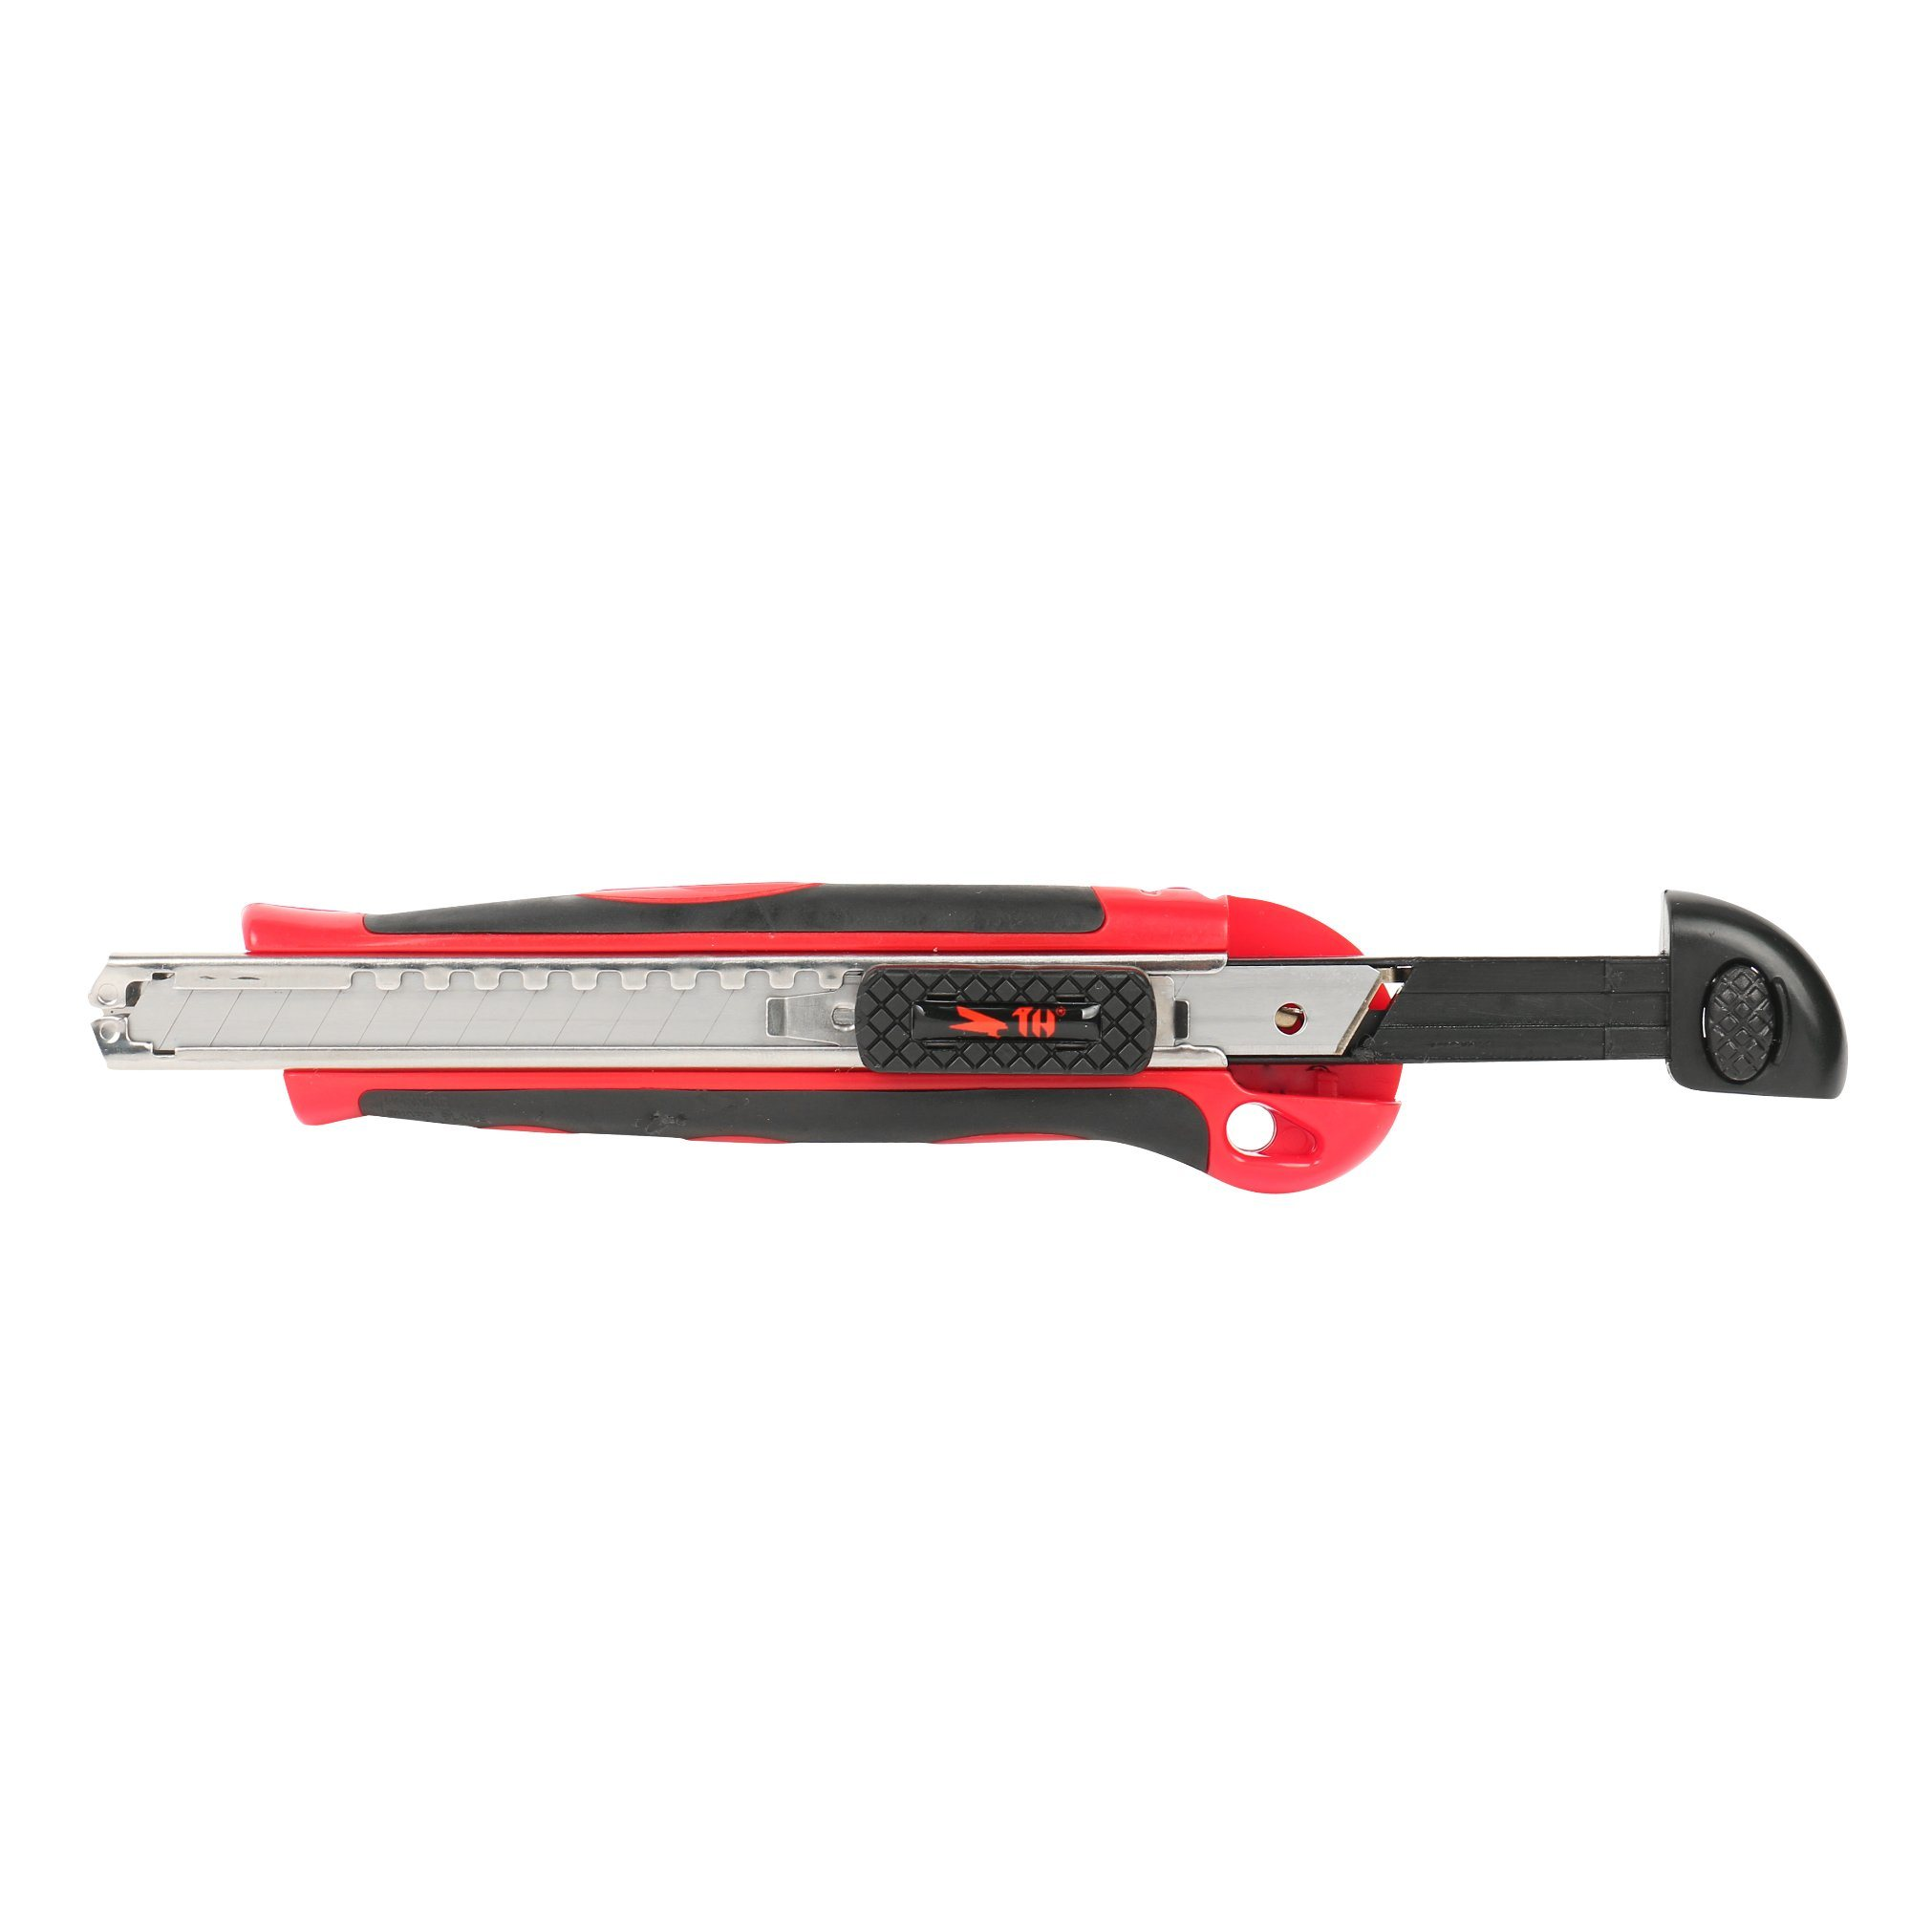 9mm Snap off Blade Auto Loading Plastic Cutter Knife